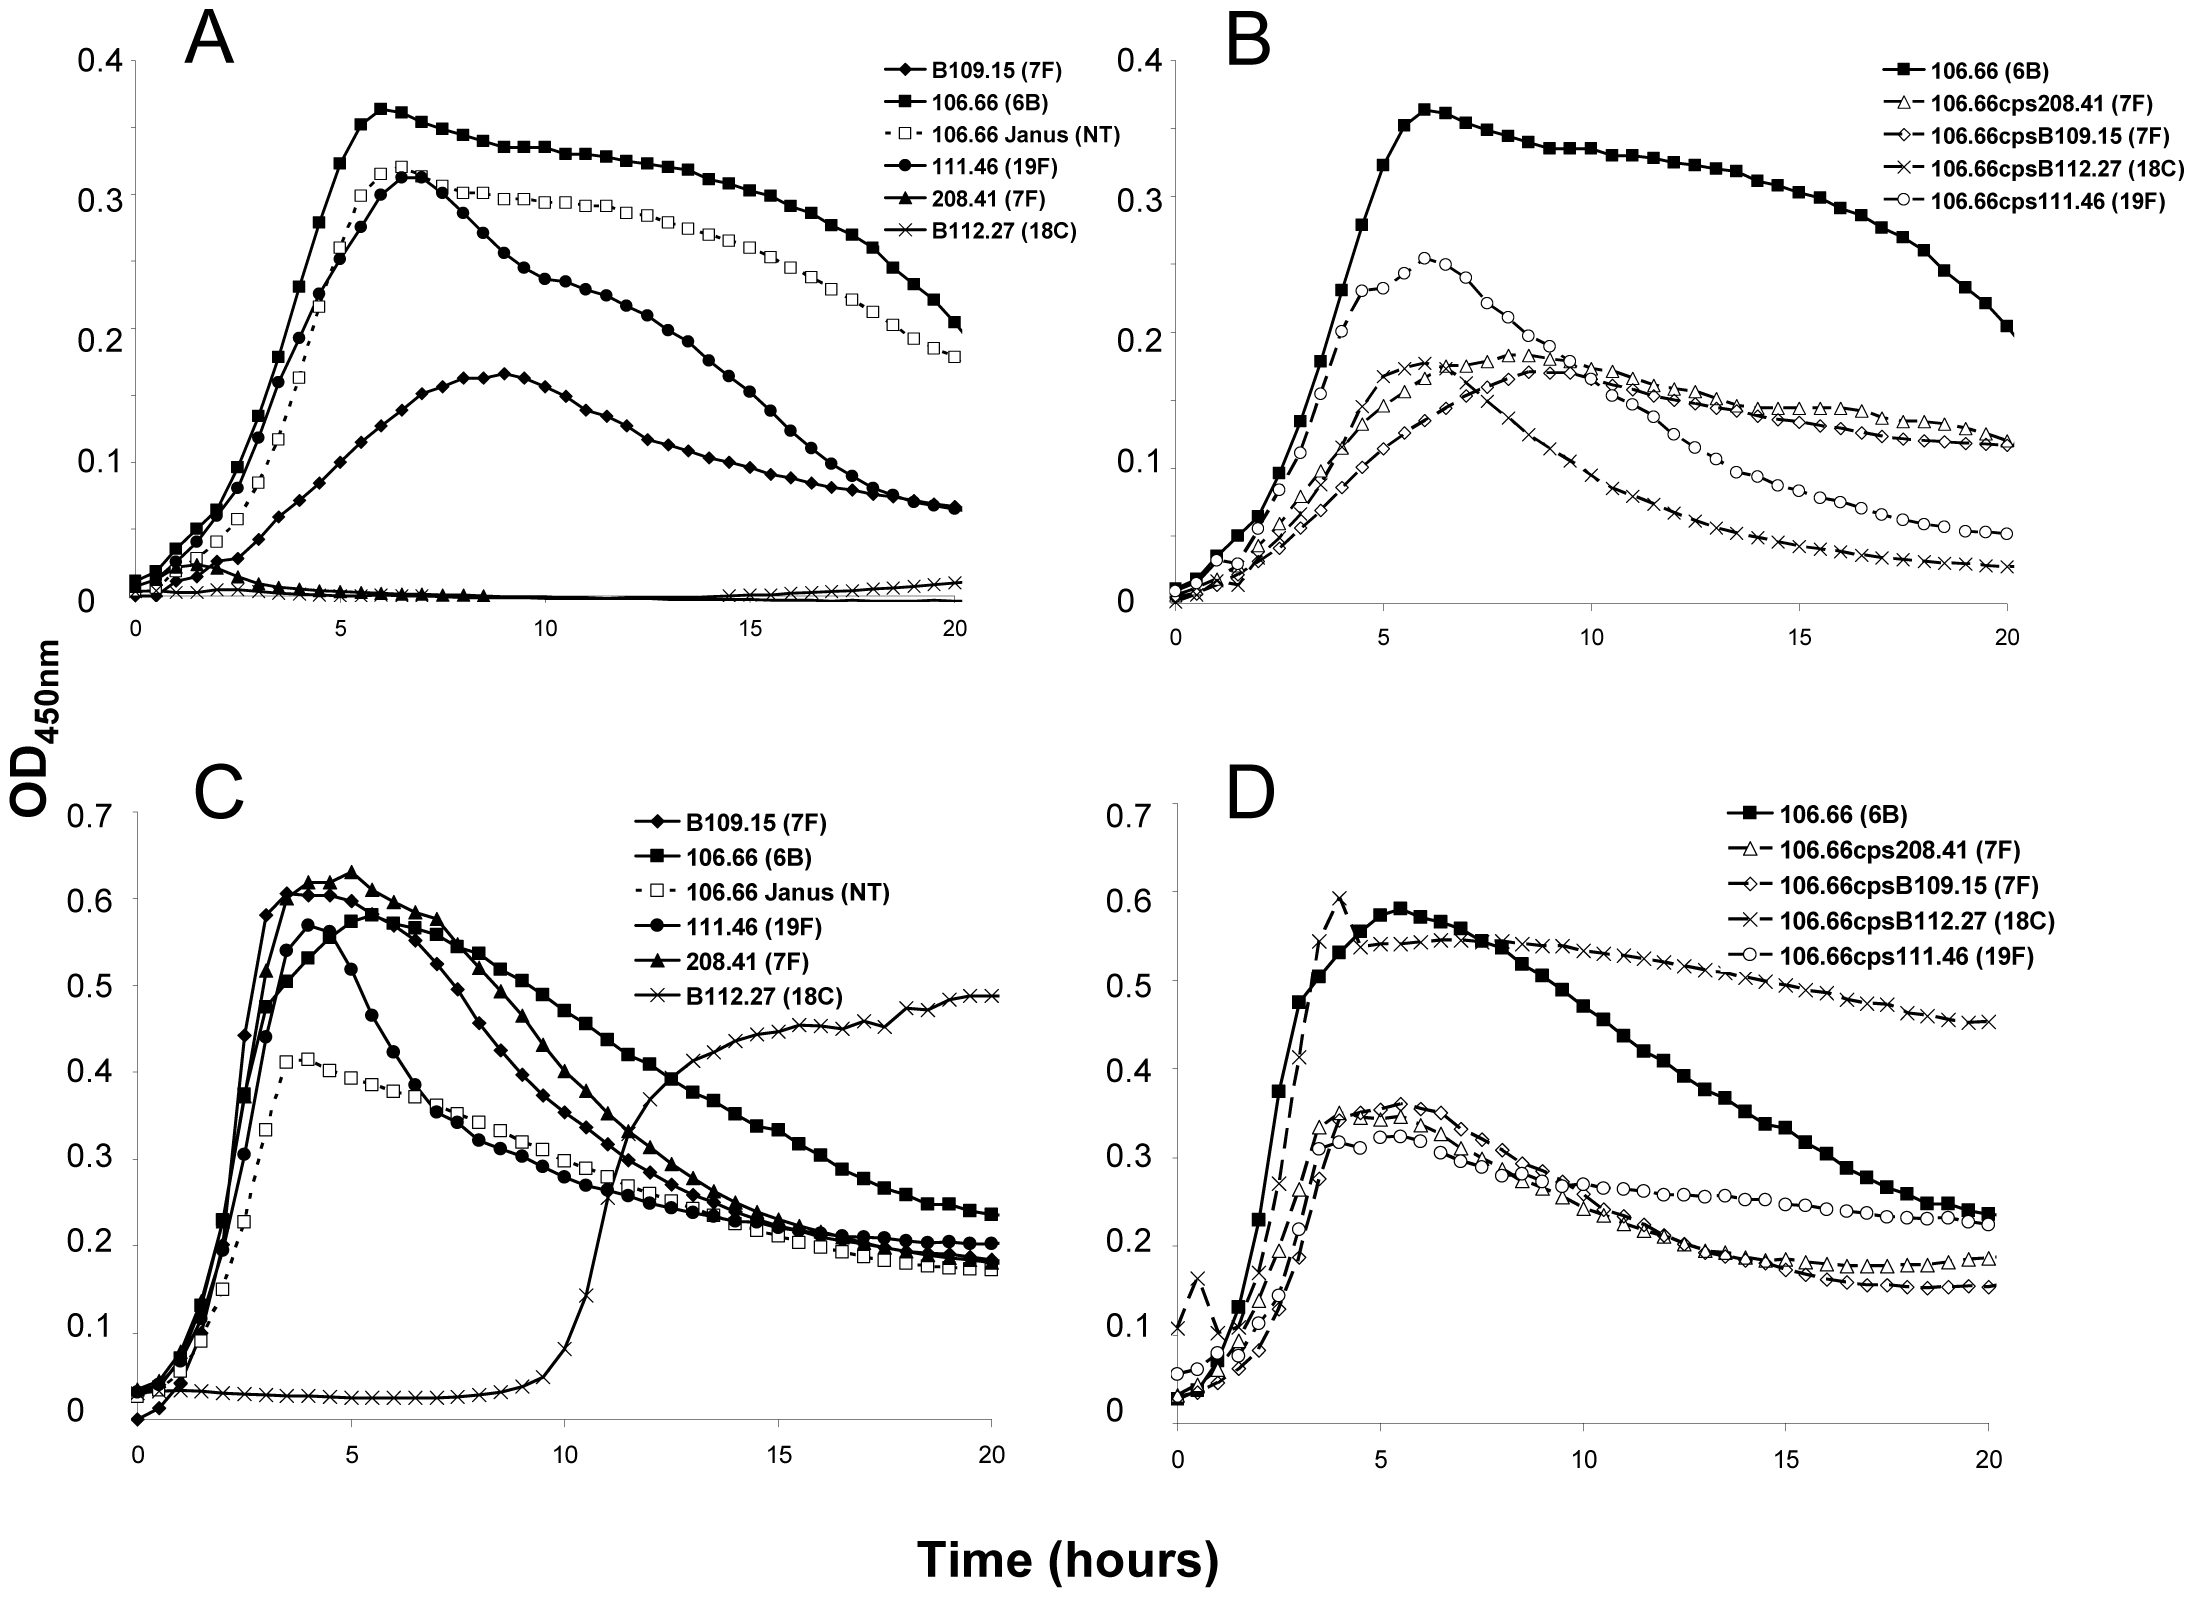 Growth curves of strain 106.66 (serotype 6B) after replacing 6B capsule operon with operons of different serotypes.